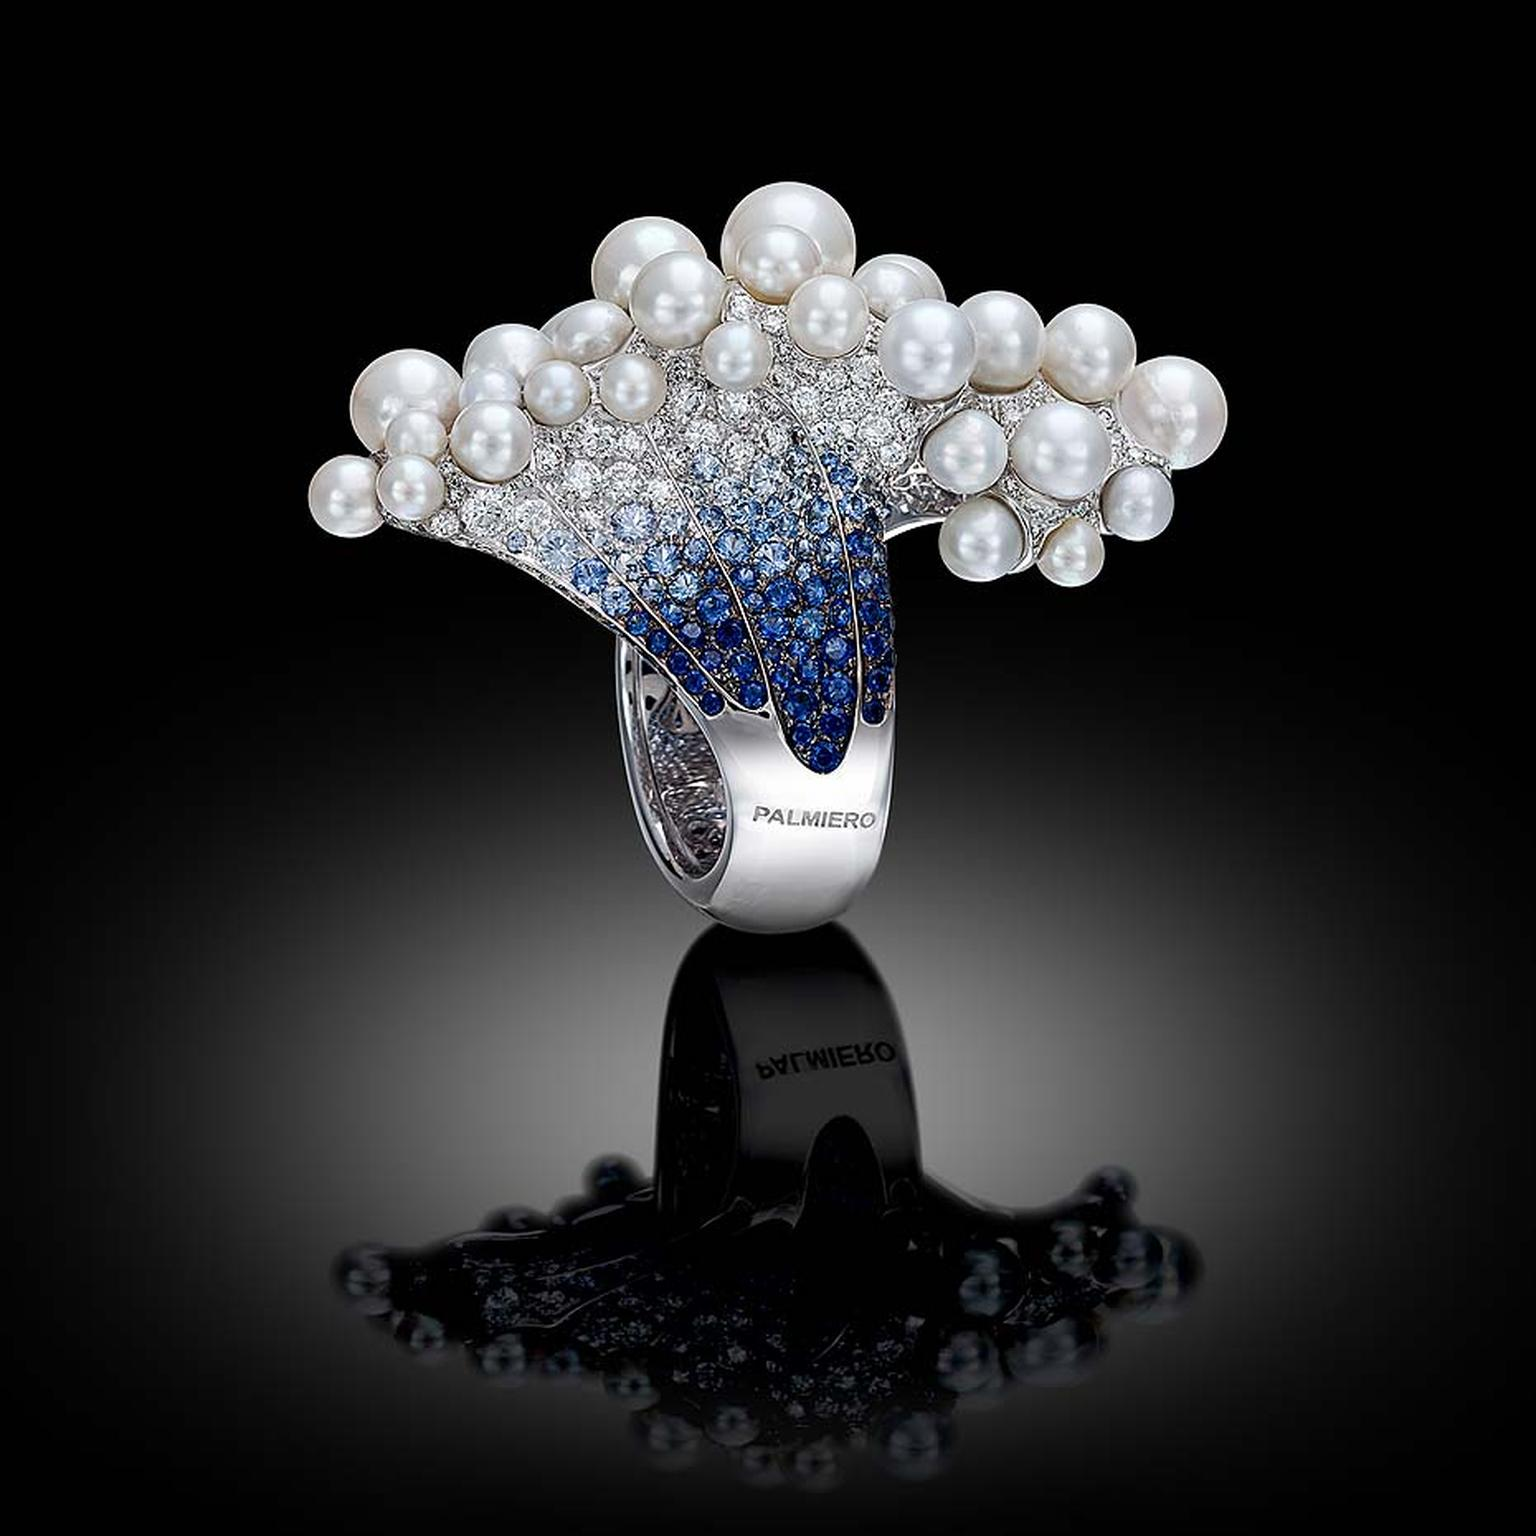 Palmiero ring launched at Baselworld 2015, inspired by the underwater world, set with graduated blue sapphires and topped with a foam of bubbling pearls.